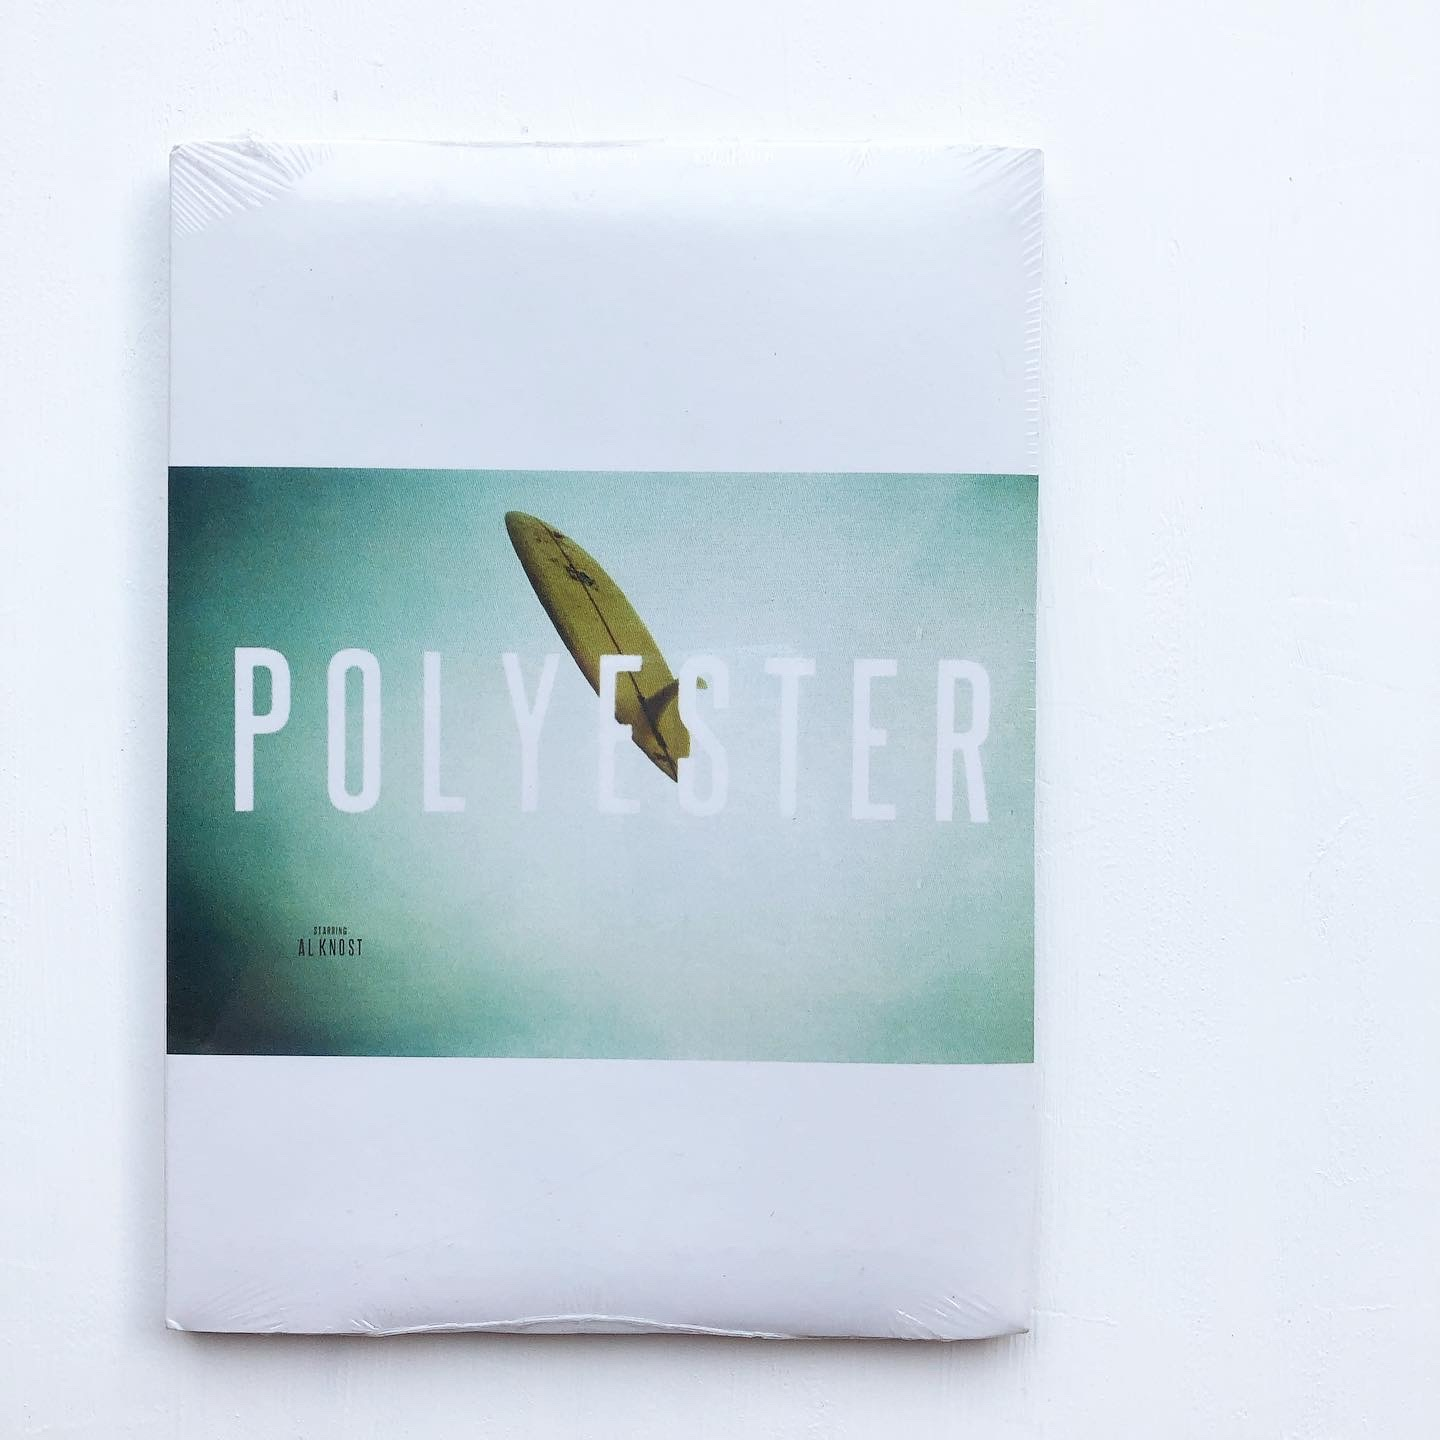 POLYESTER a film by Jack Coleman